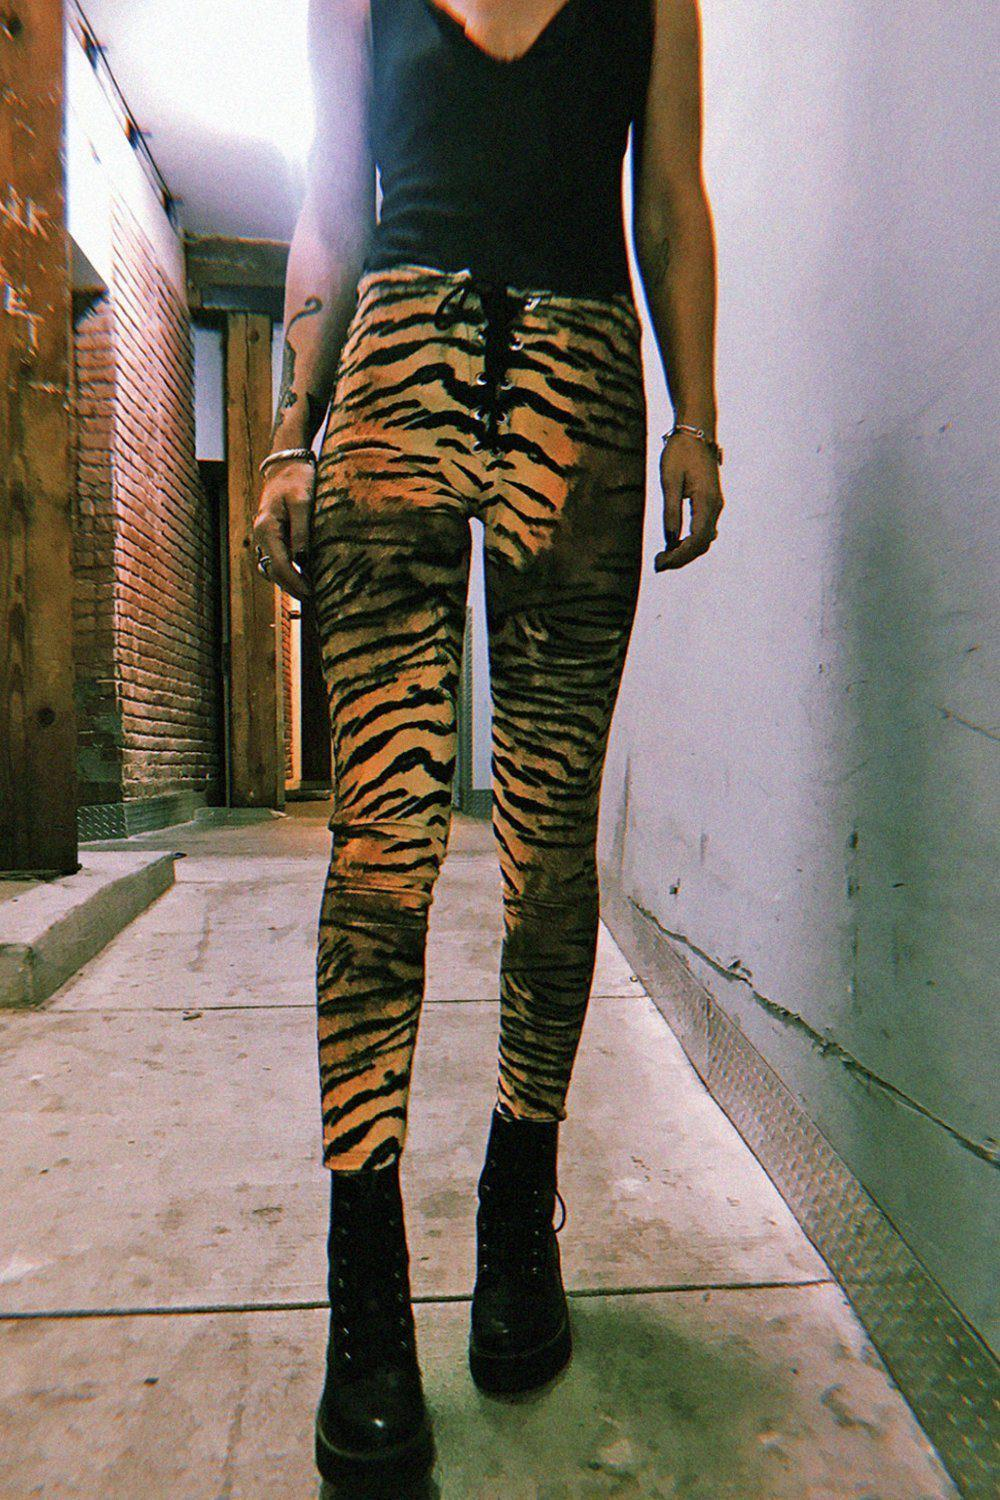 *In Stock Now!* Tiger Velvet Grommet Pants Size XS, bottoms, BAD VIBES, BACKBITE